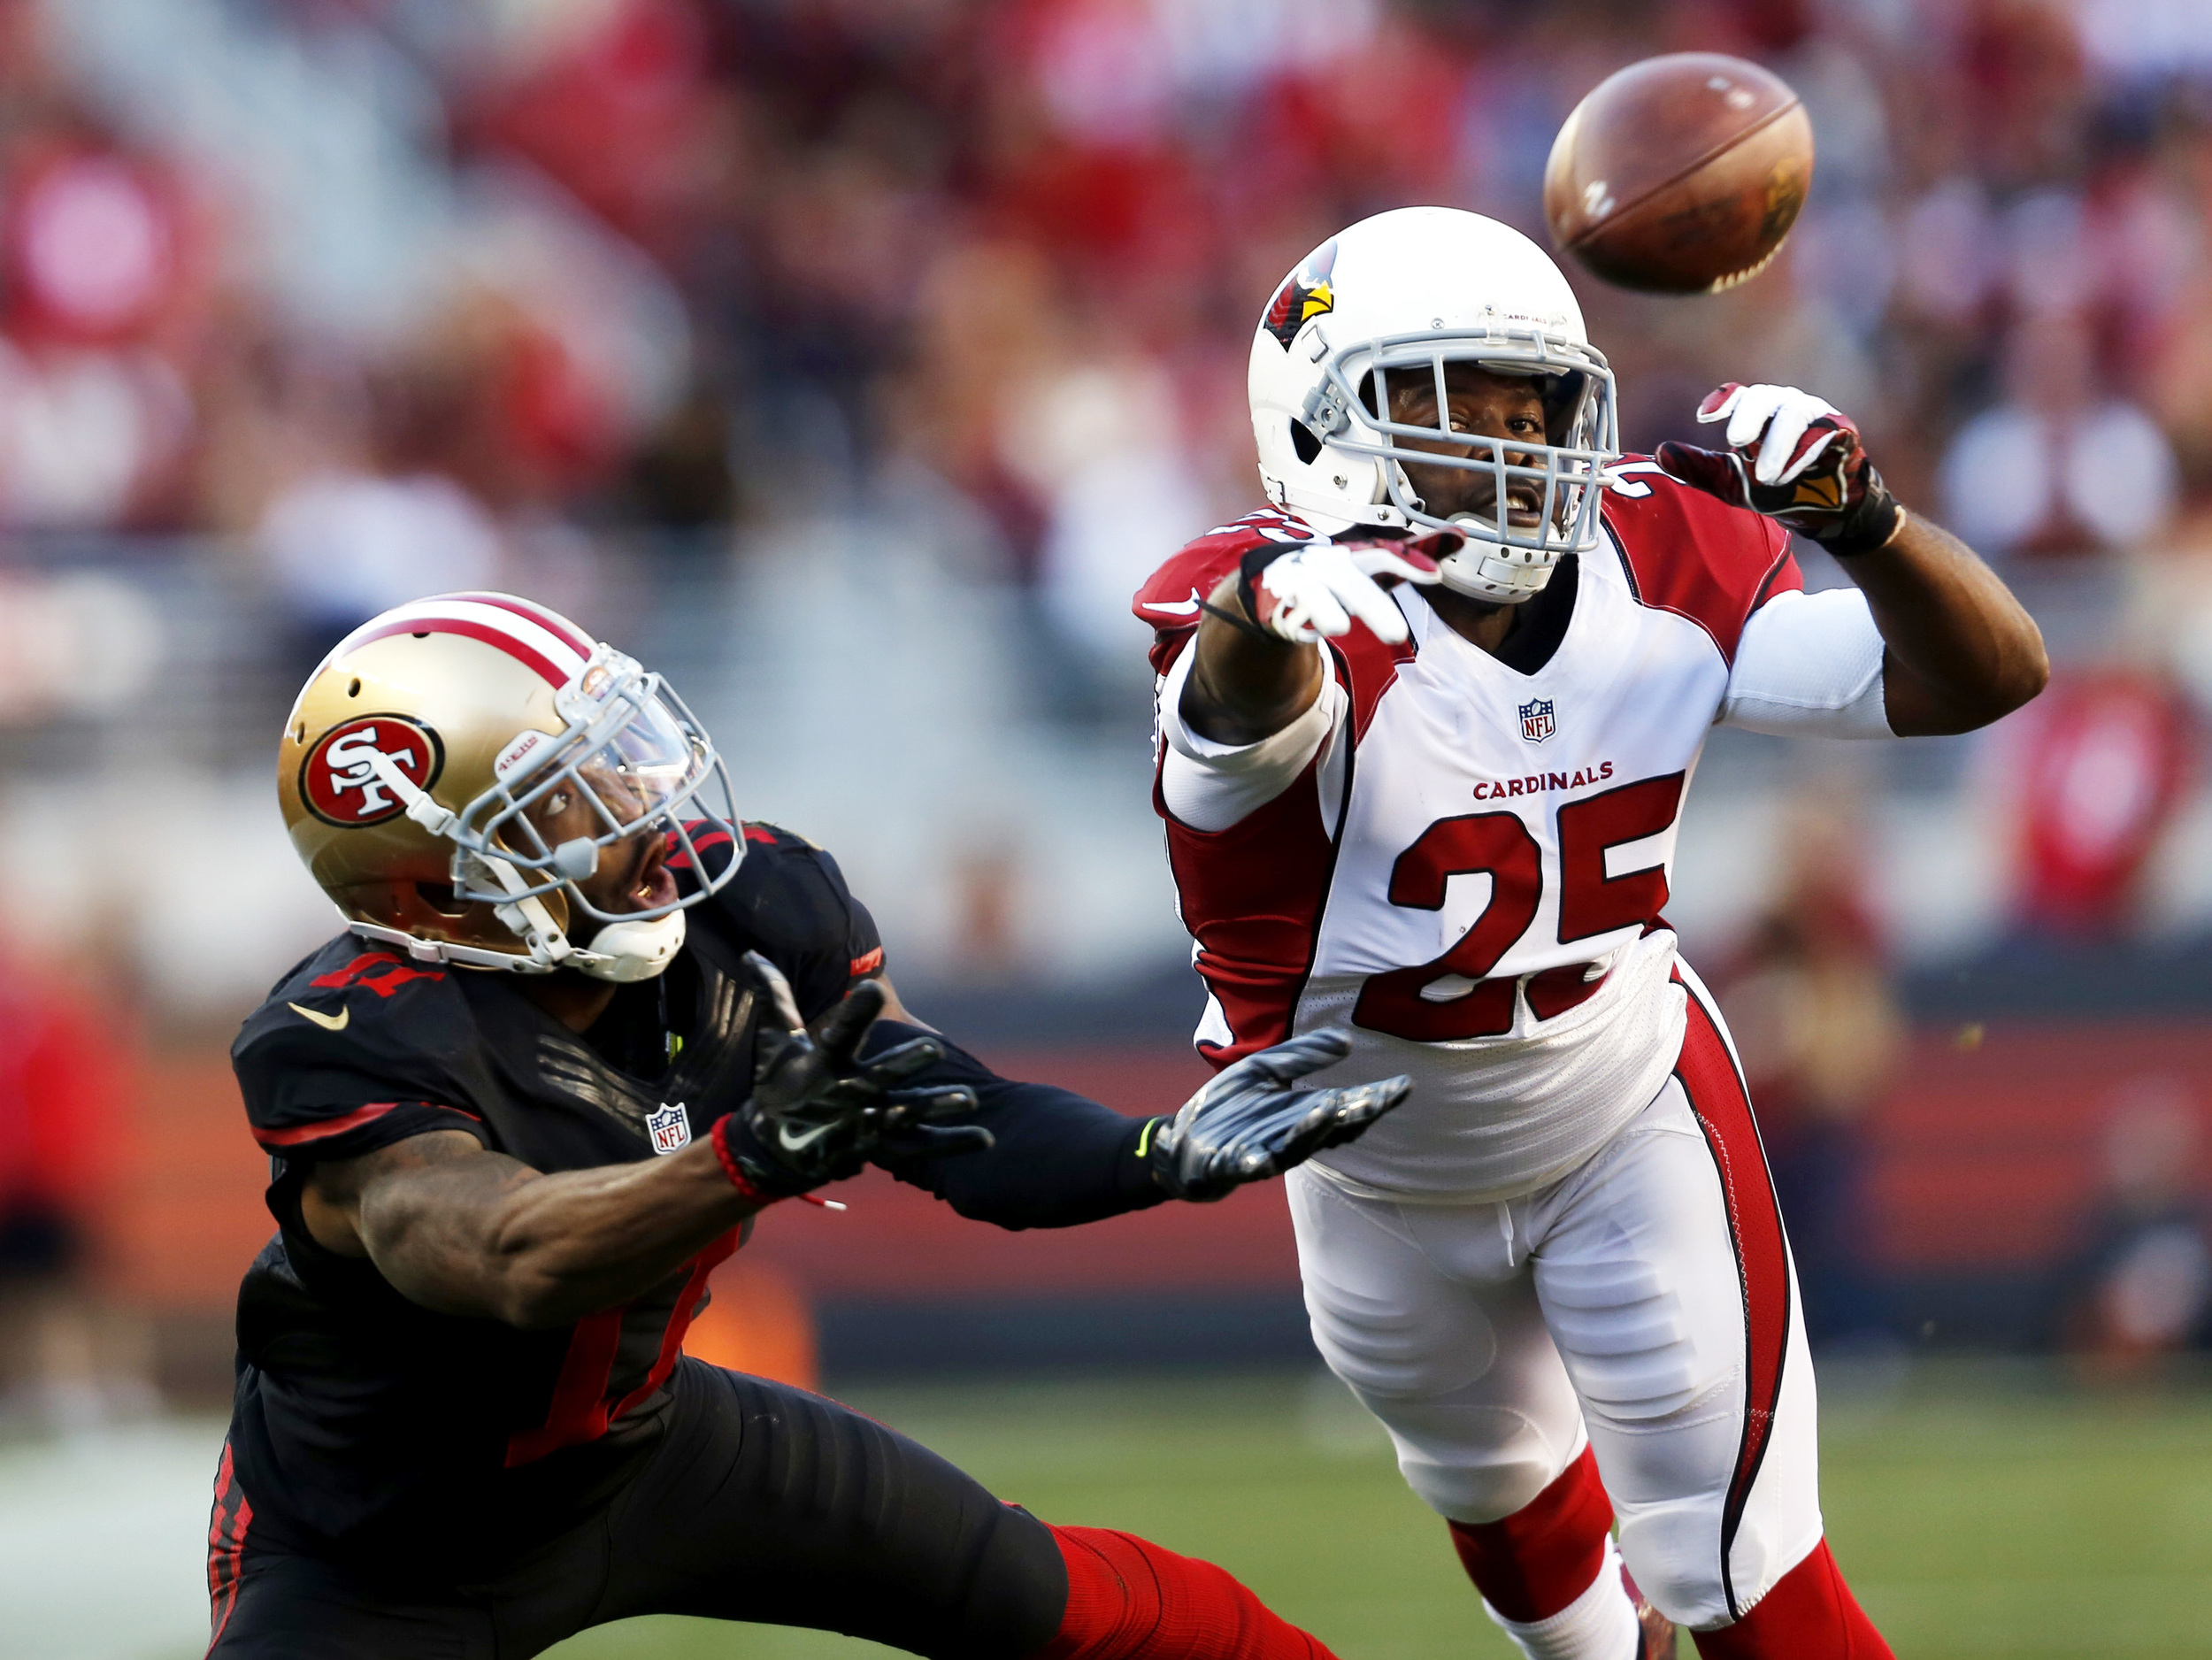 Quinton Patton (11) and Jerraud Powers (25) dive for a pass during a game between the 49ers and the Arizona Cardinals at Levi's Stadium on Sunday, Nov. 29, 2015.